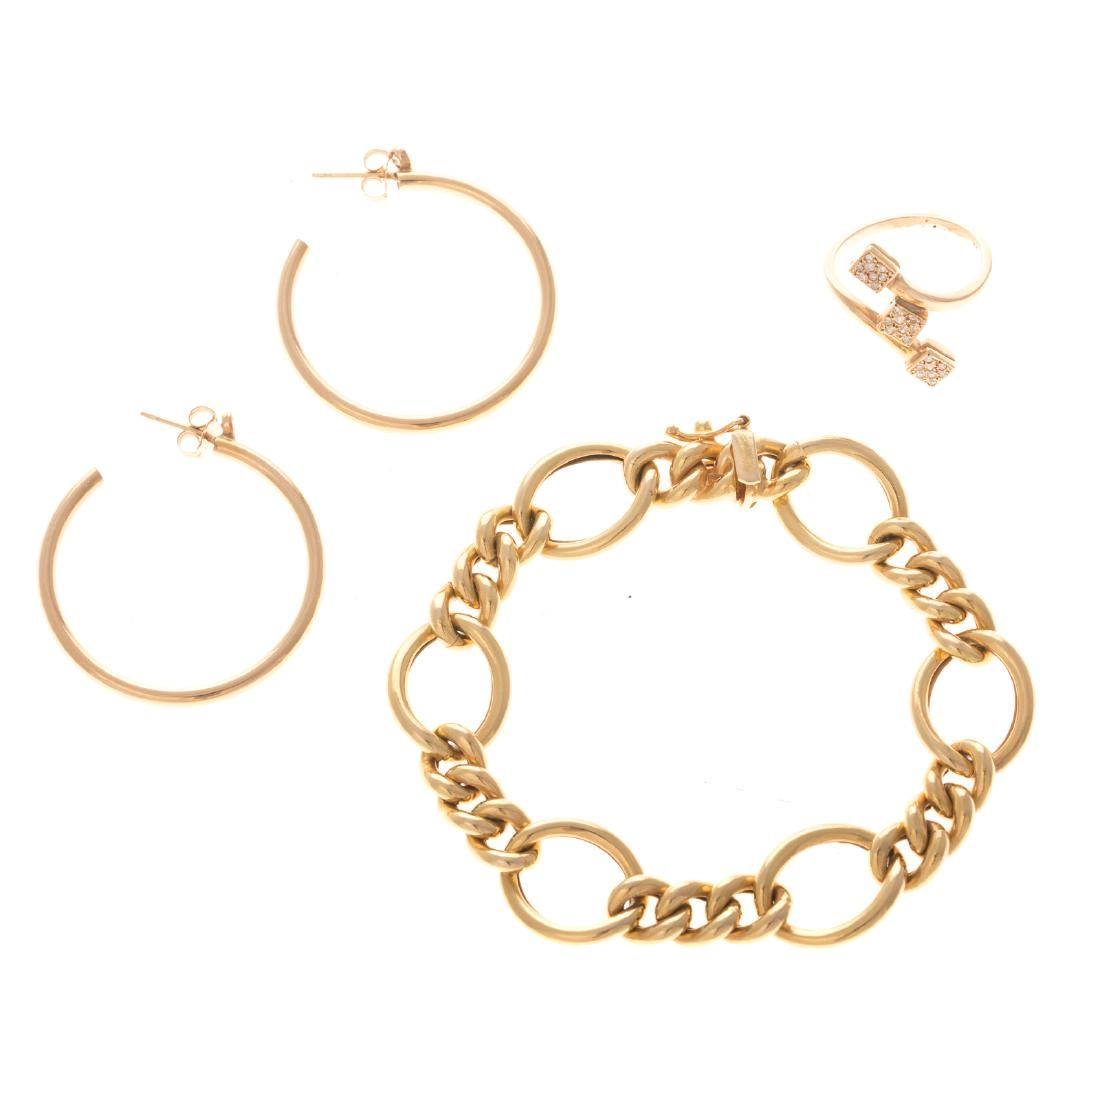 A Lady's Suite of Classic Jewelry in 14K Gold